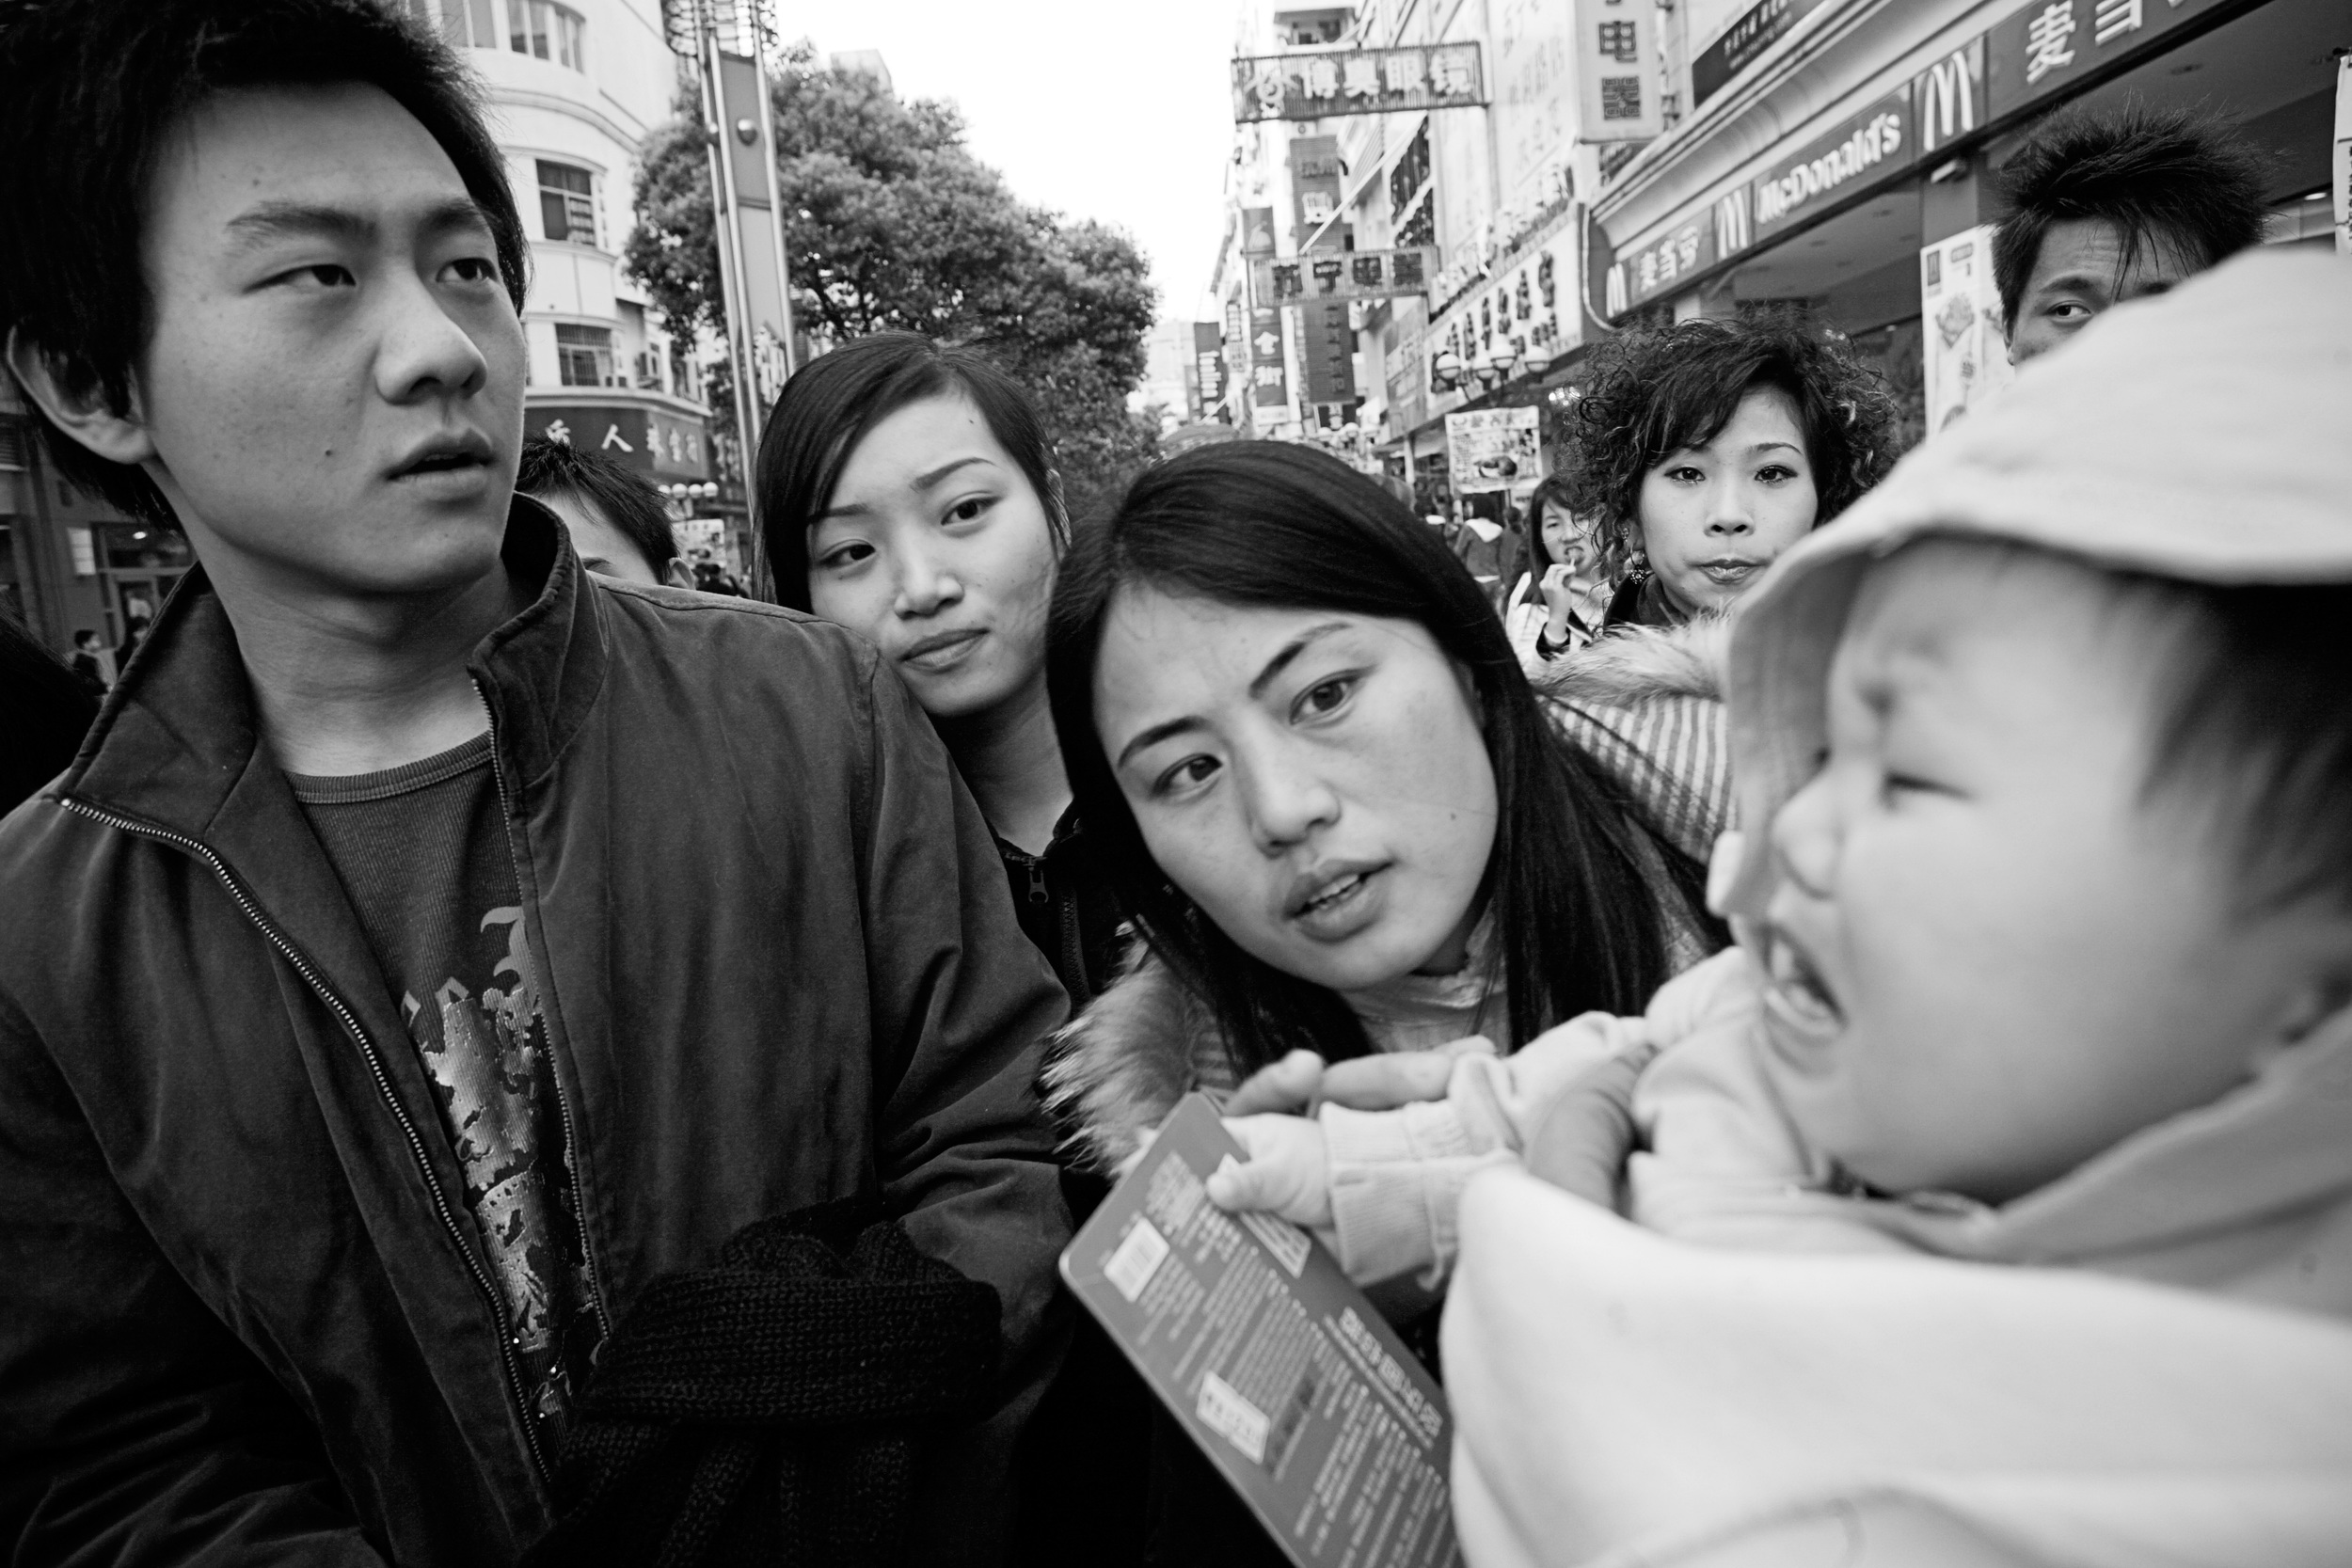 Everywhere Bob and Karen go with Kailee in Nanchang, they draw attention and curious onlookers.